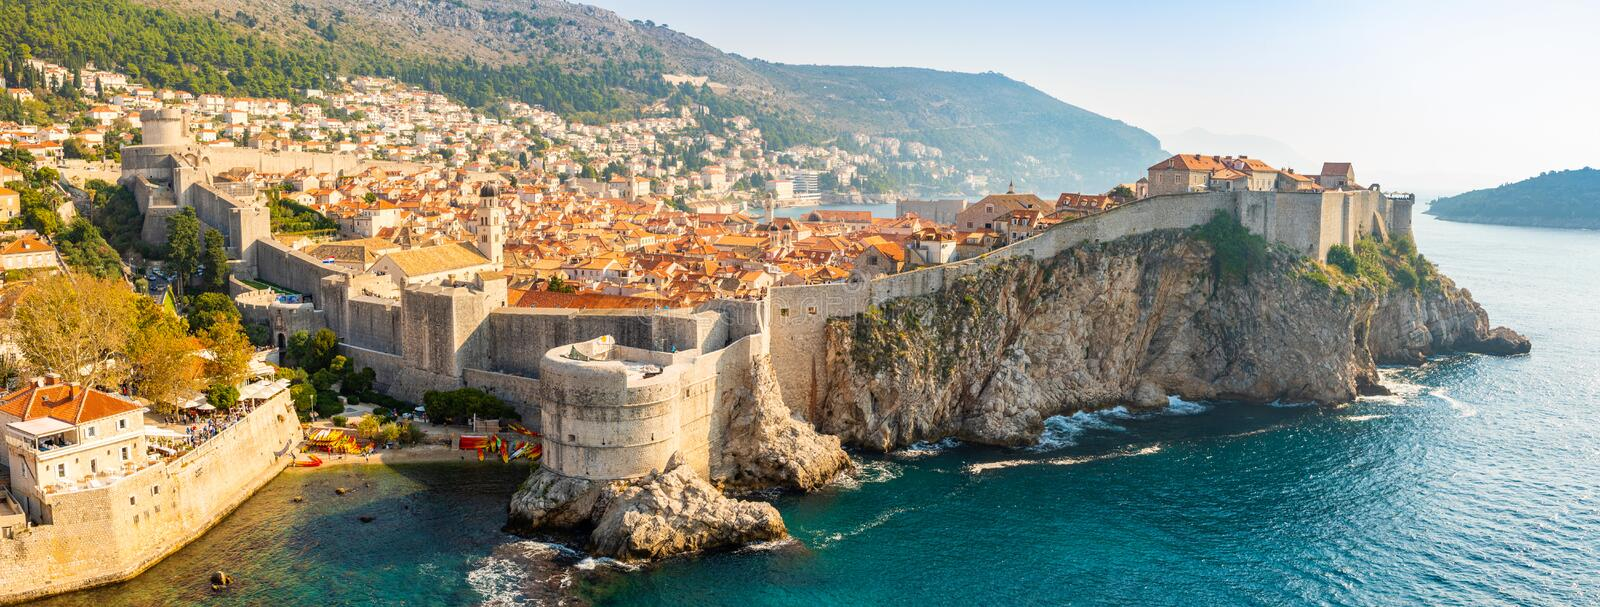 View from Fort Lovrijenac to Dubrovnik Old town in Croatia at sunset light royalty free stock photography